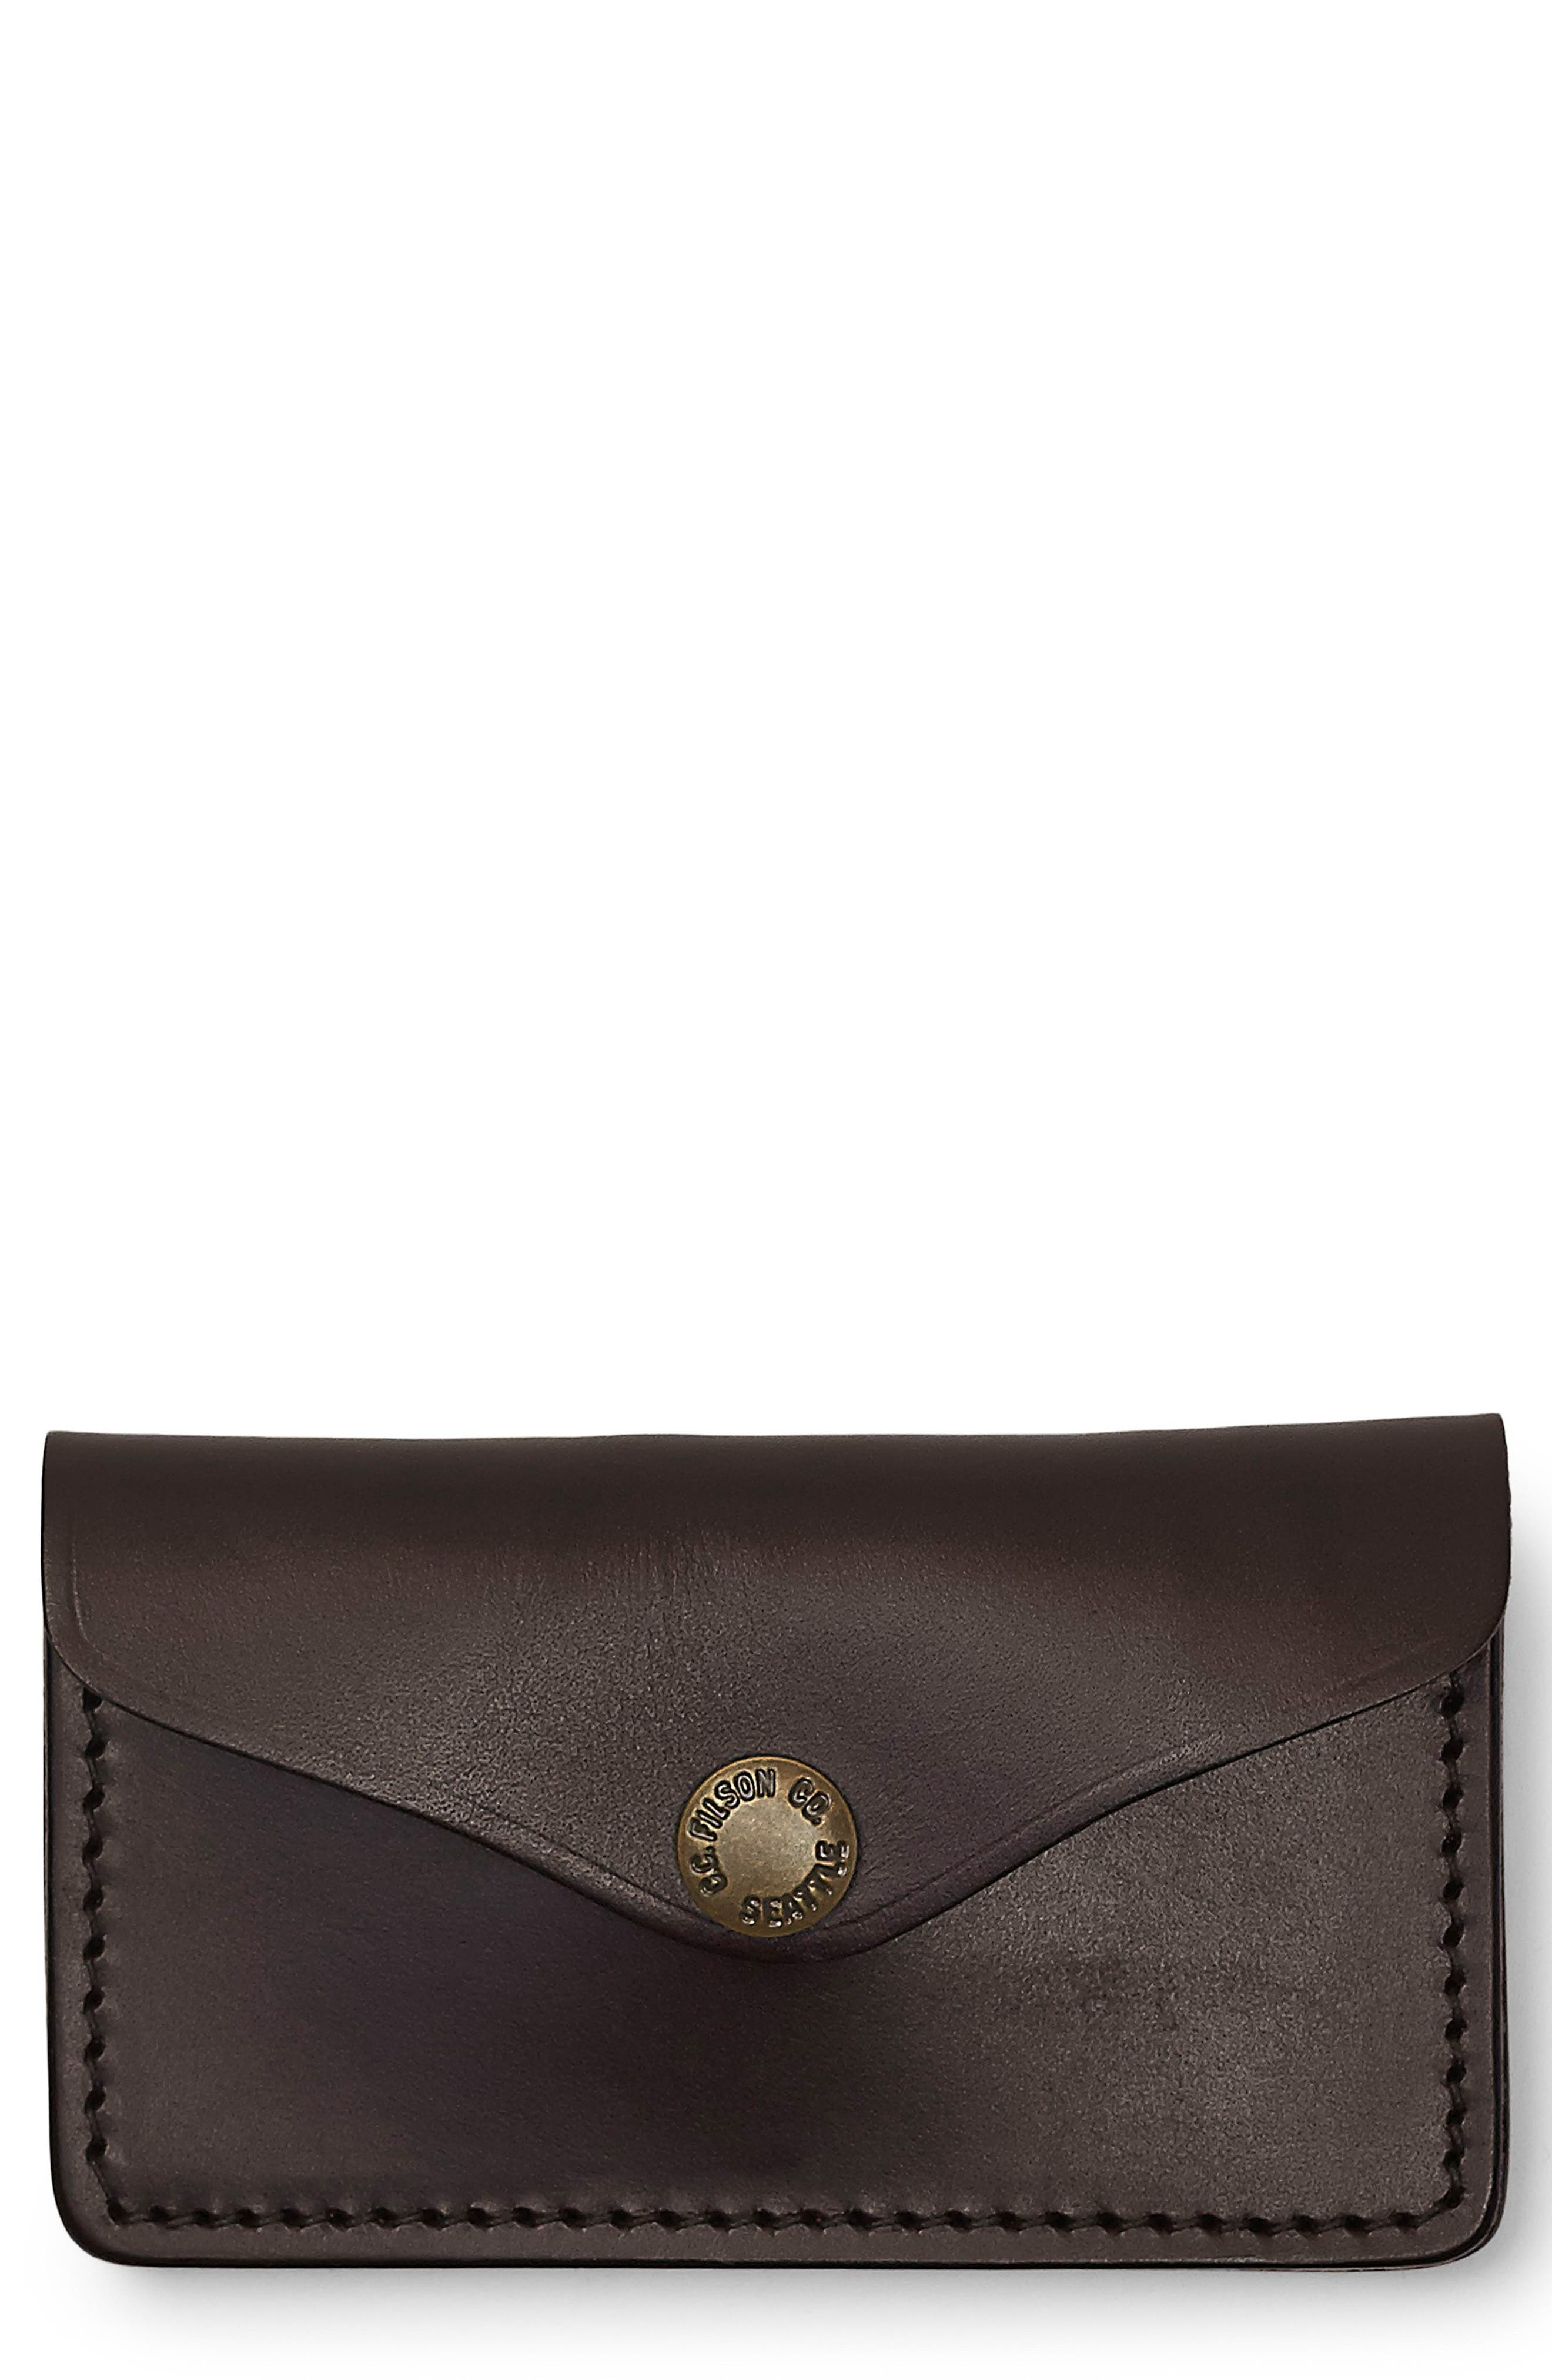 Snap Leather Wallet,                             Main thumbnail 1, color,                             Brown